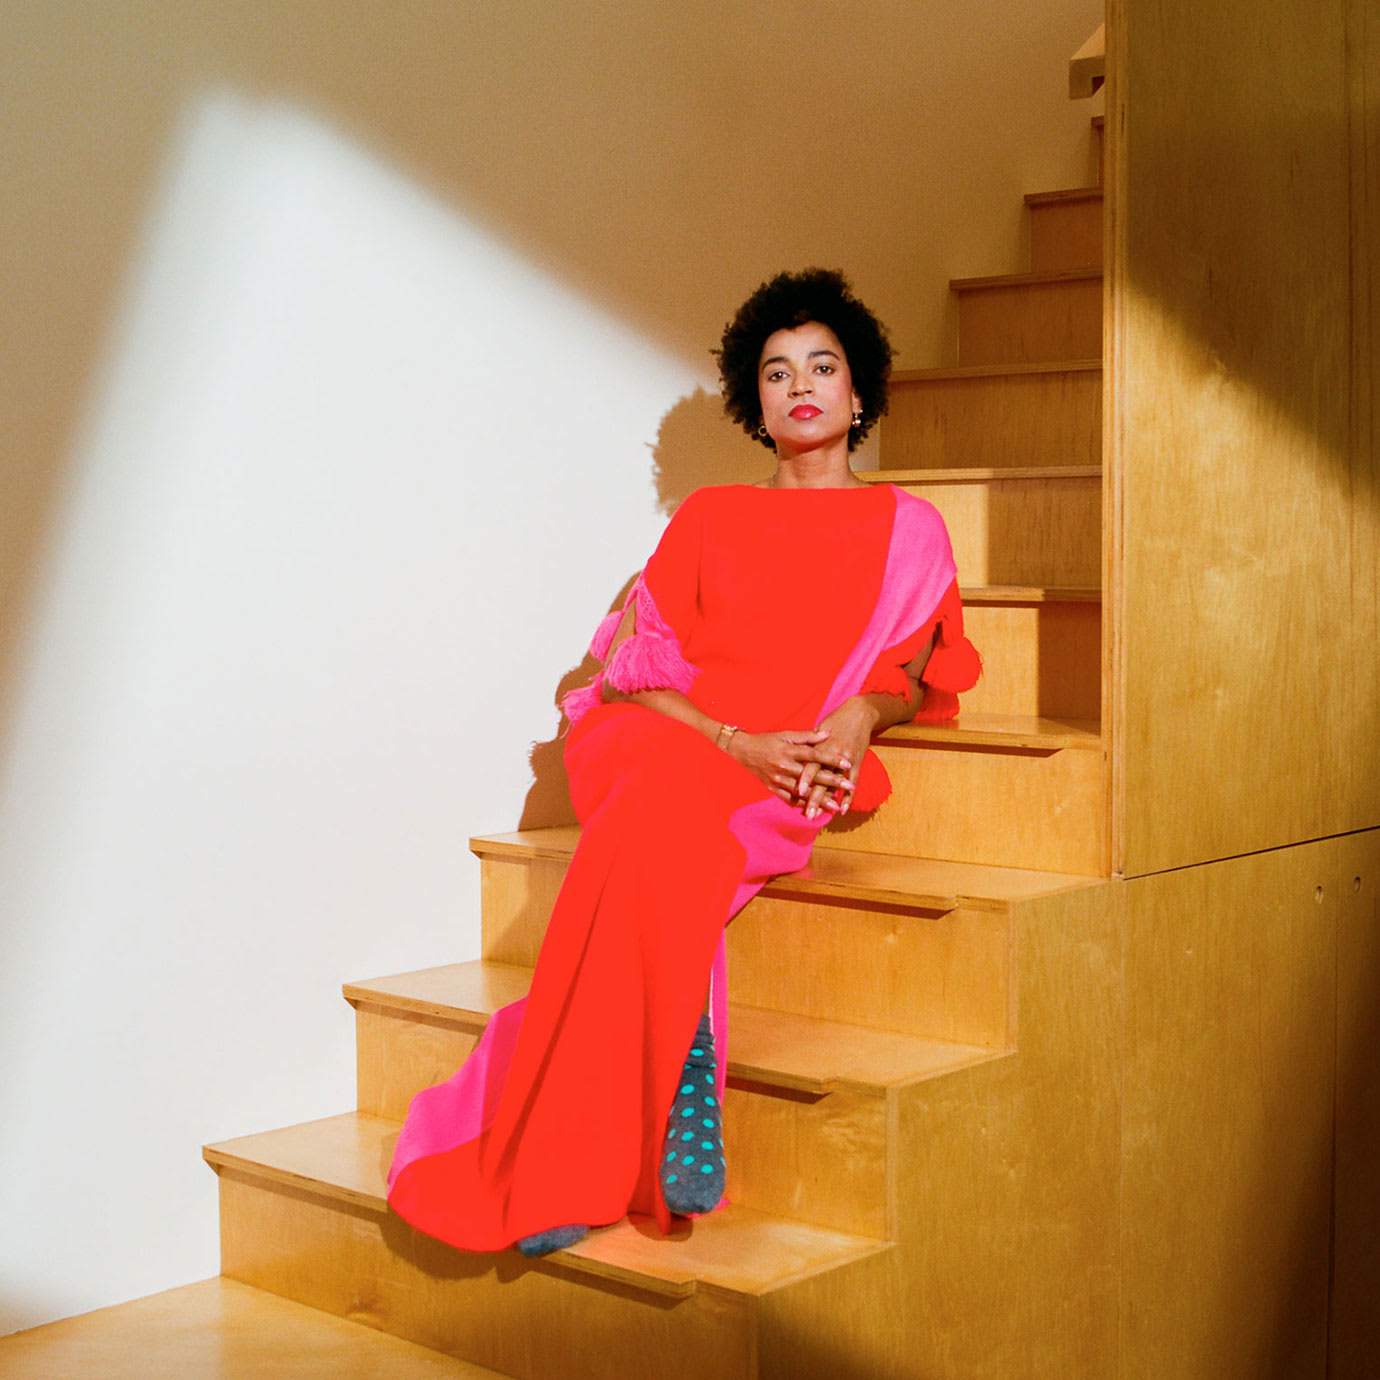 A woman in a red dress reclining on some wooden stairs.